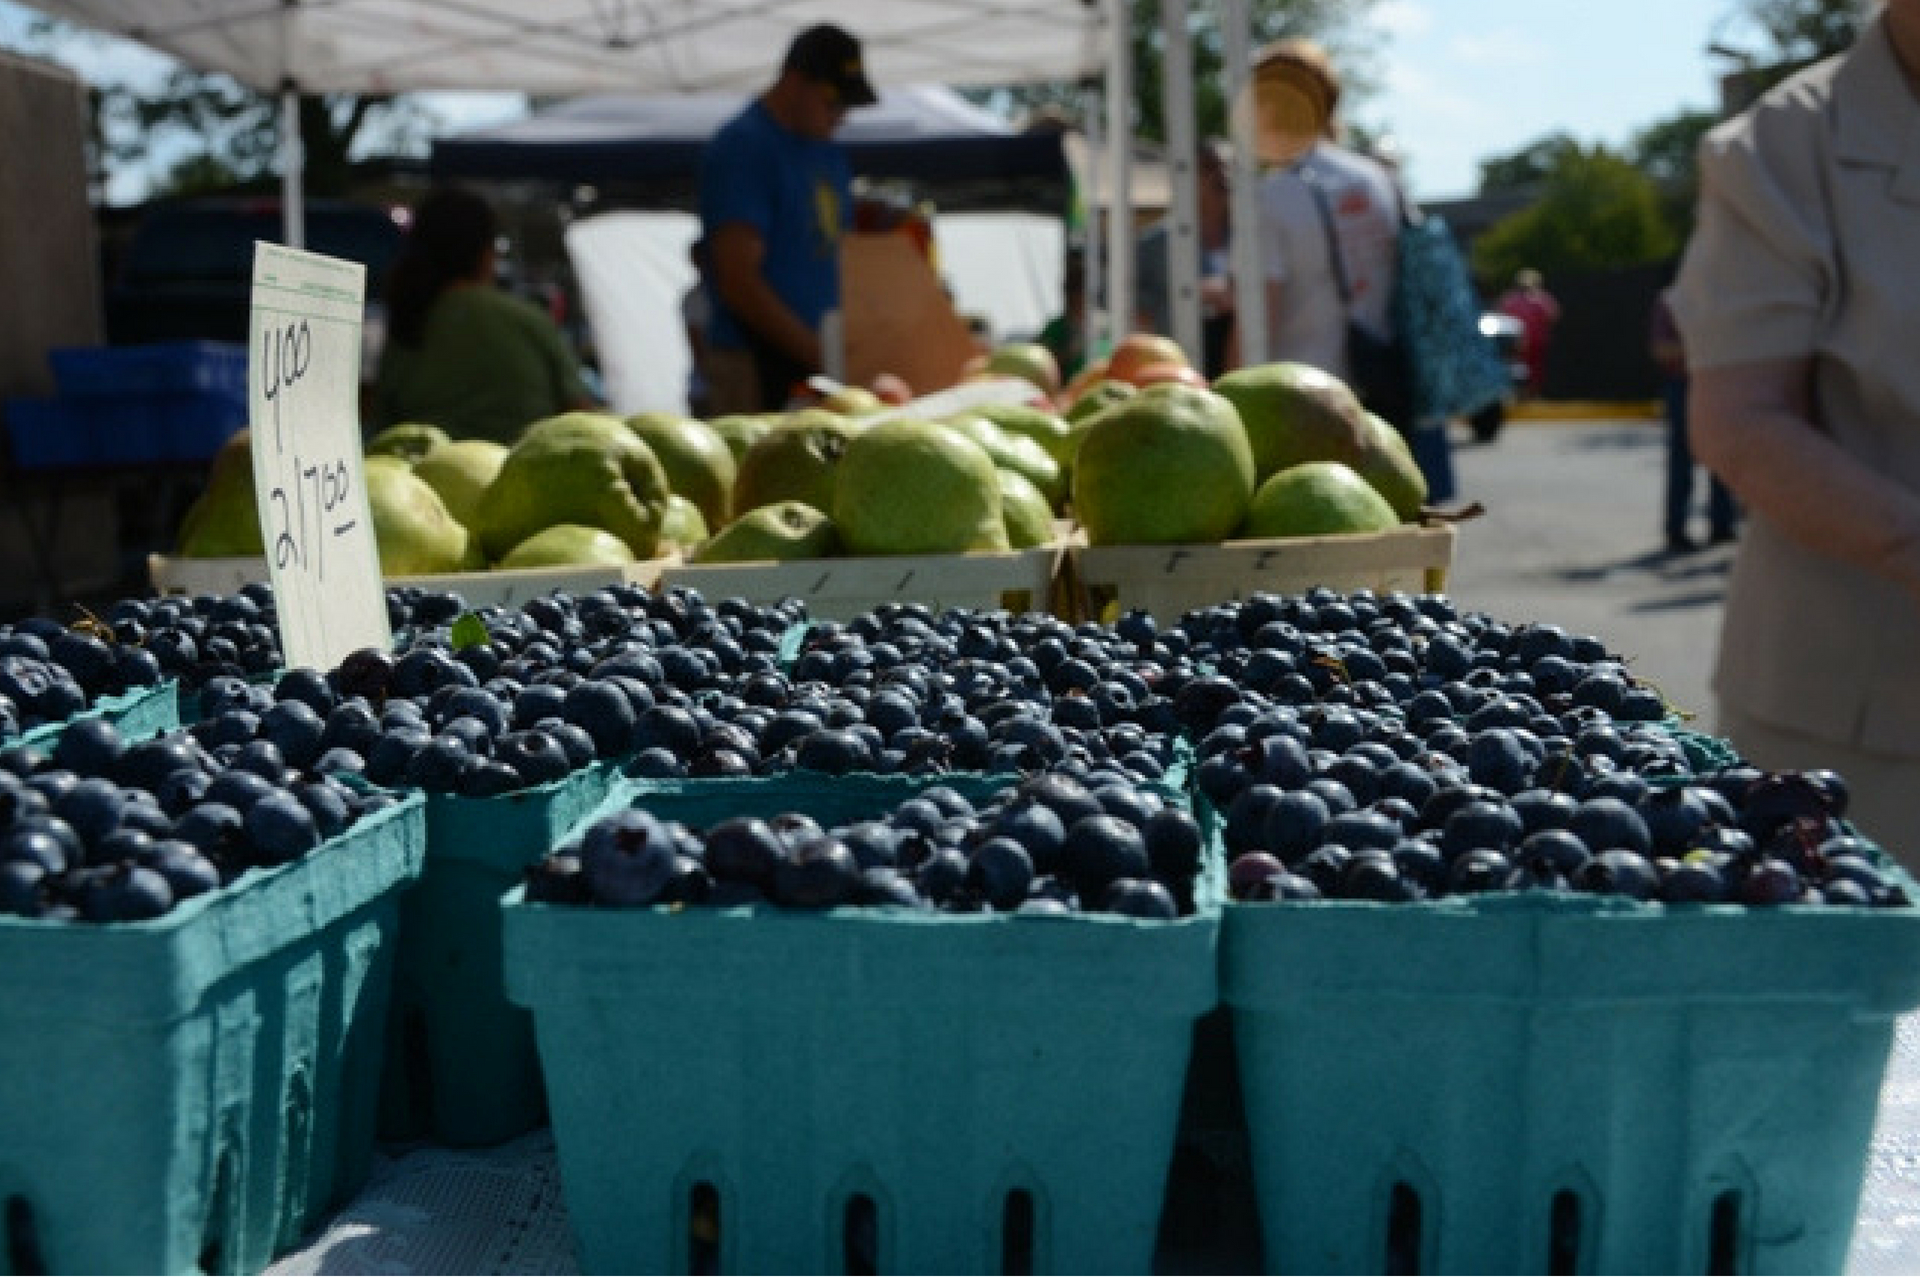 CORRECT FARMERS MARKET FREE Yoga on the Green | Downtown Skokie Outdoor Farmers' Market